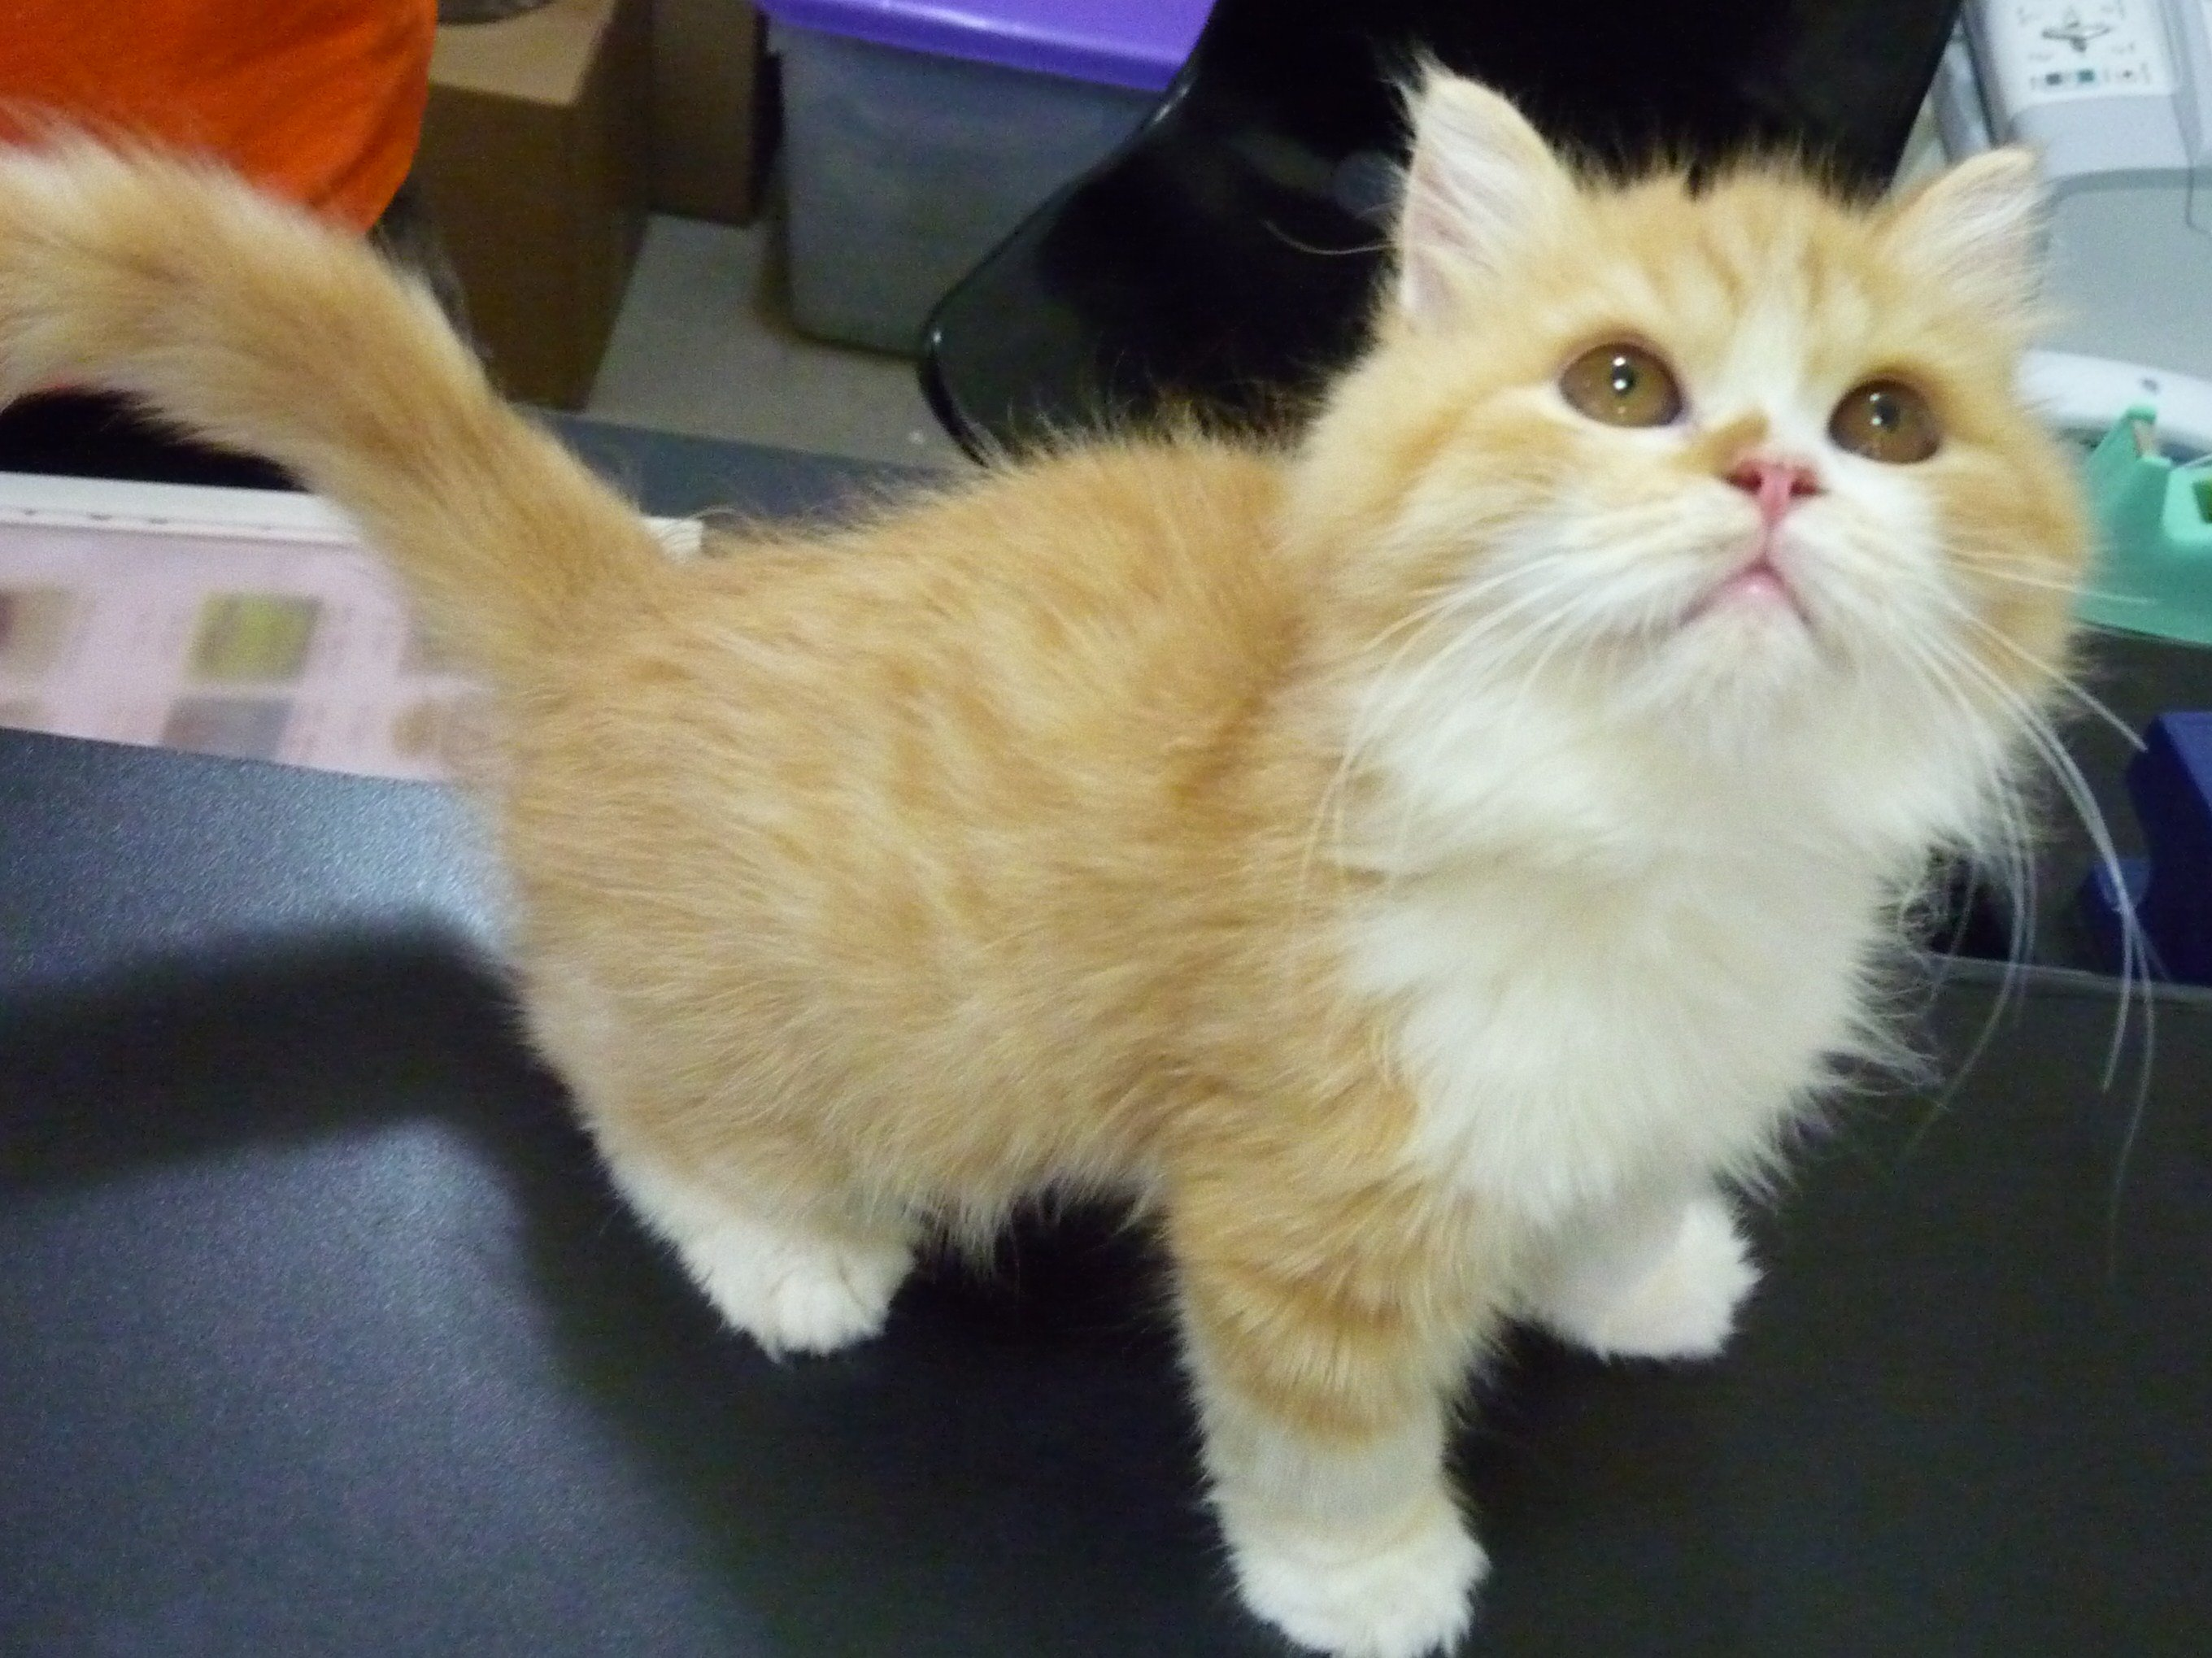 FOR SALE / ADOPTION: Red & White Tabby Persian Kitten